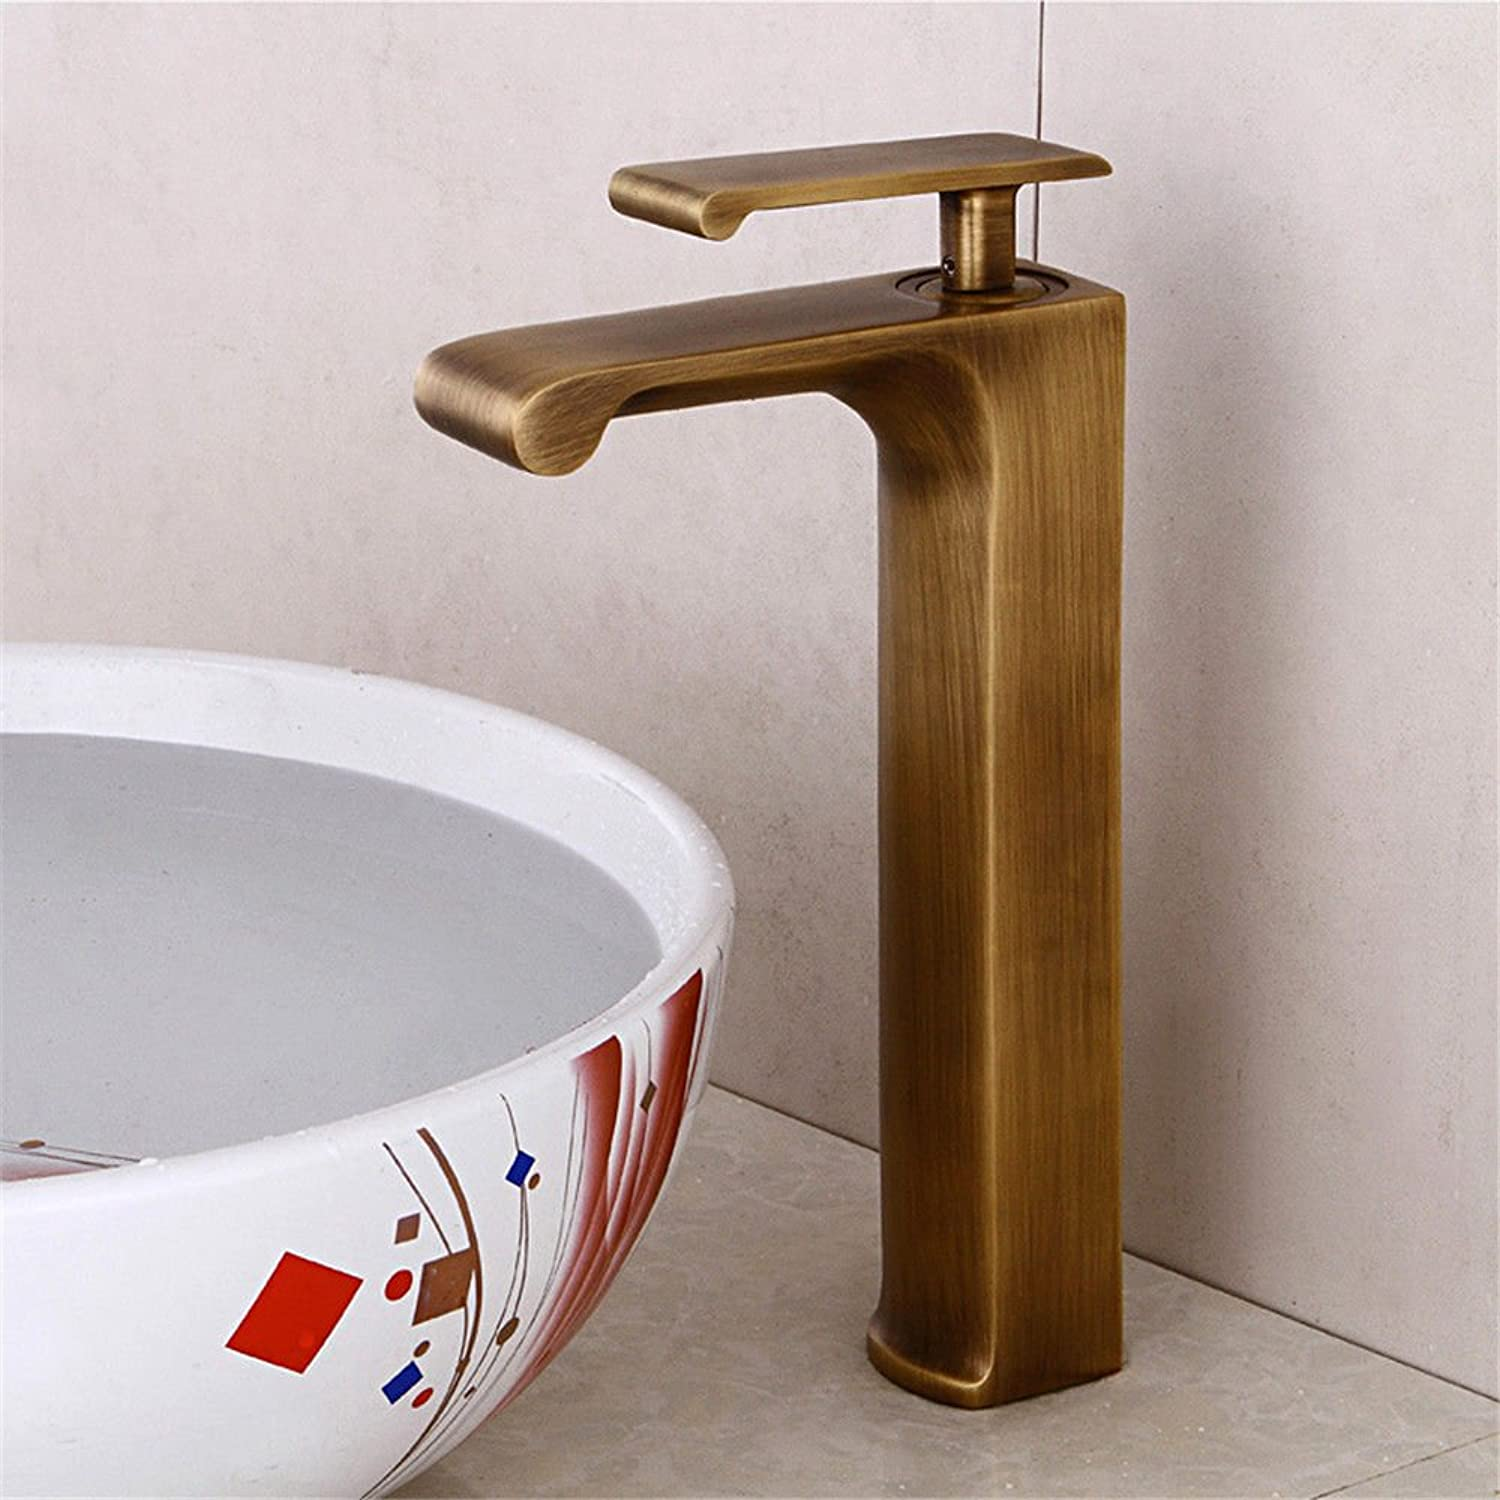 AQMMi Bathroom Sink Faucet Basin Mixer Tap Antique Retro Brass Hot and Cold Water Waterfall Single Lever Basin Sink Tap Bathroom Bar Faucet